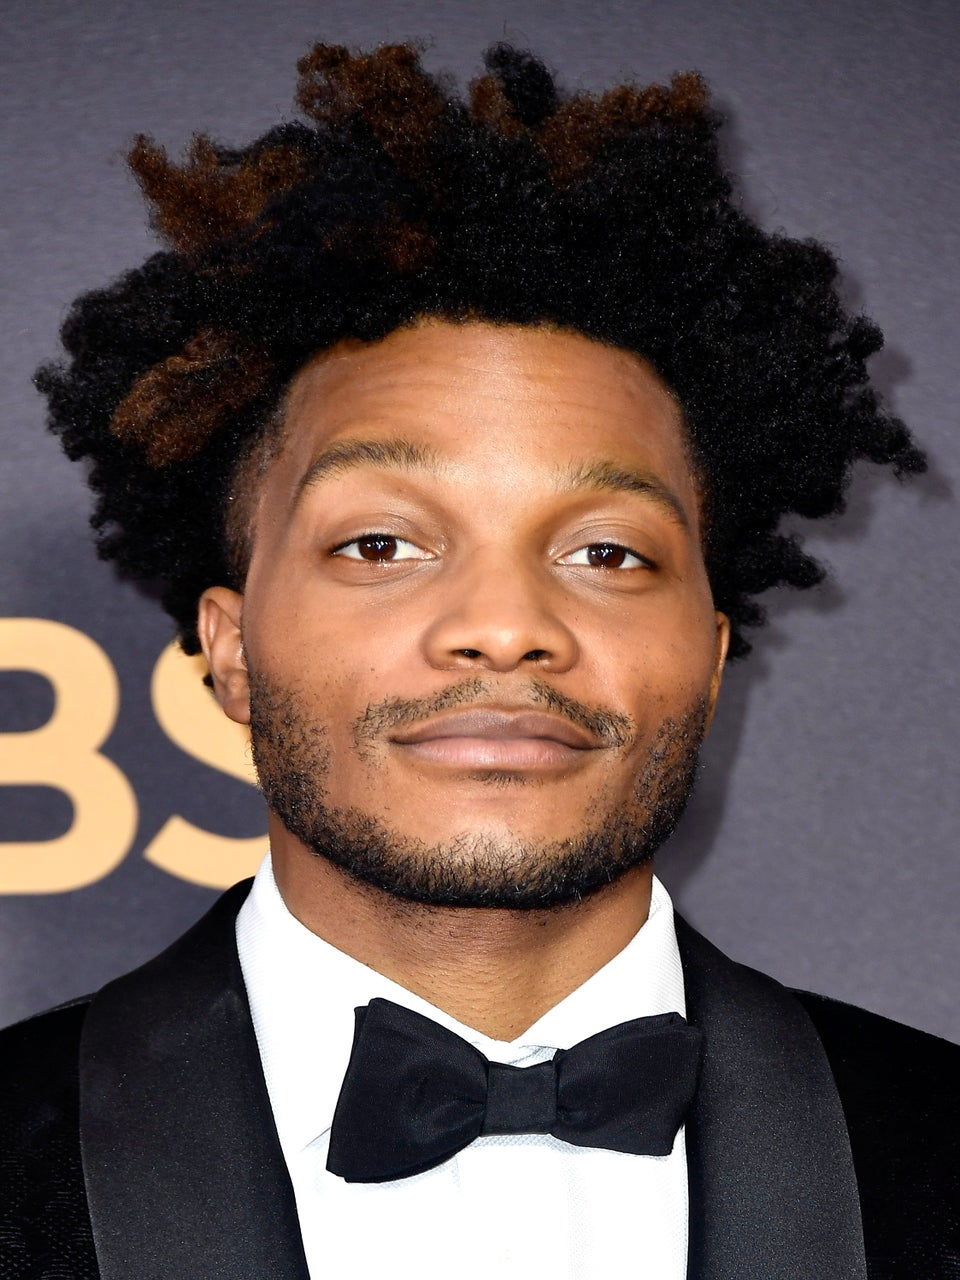 Who Is Jermaine Fowler? 5 Things To Know About The 2017 Emmys Announcer